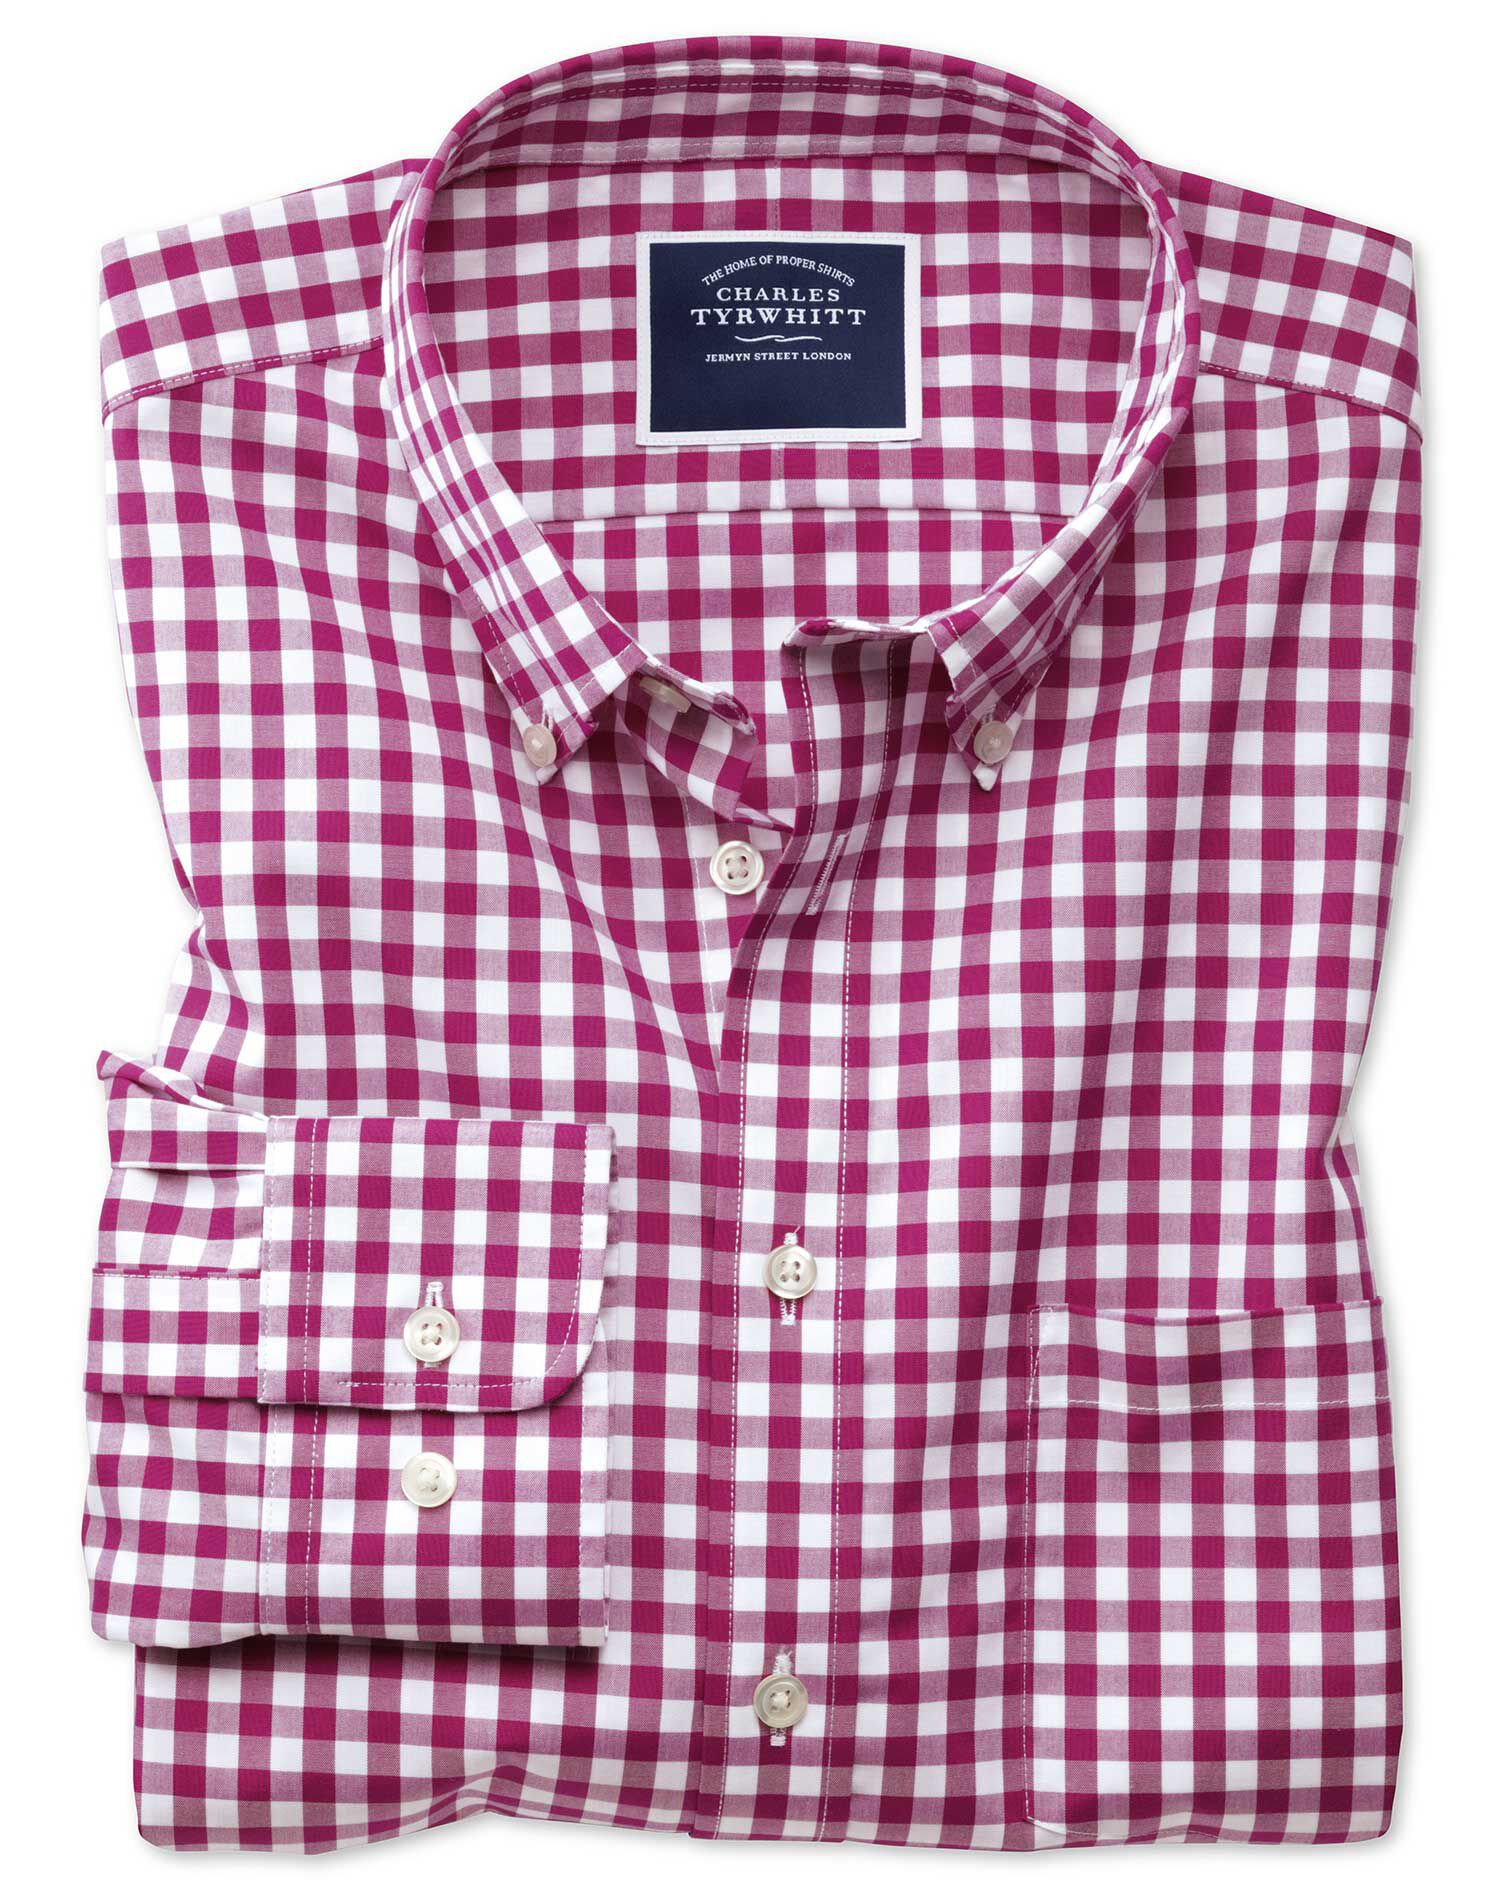 Charles Tyrwhitt Classic Fit Non-Iron Poplin Red Check Cotton Formal Shirt Size Medium